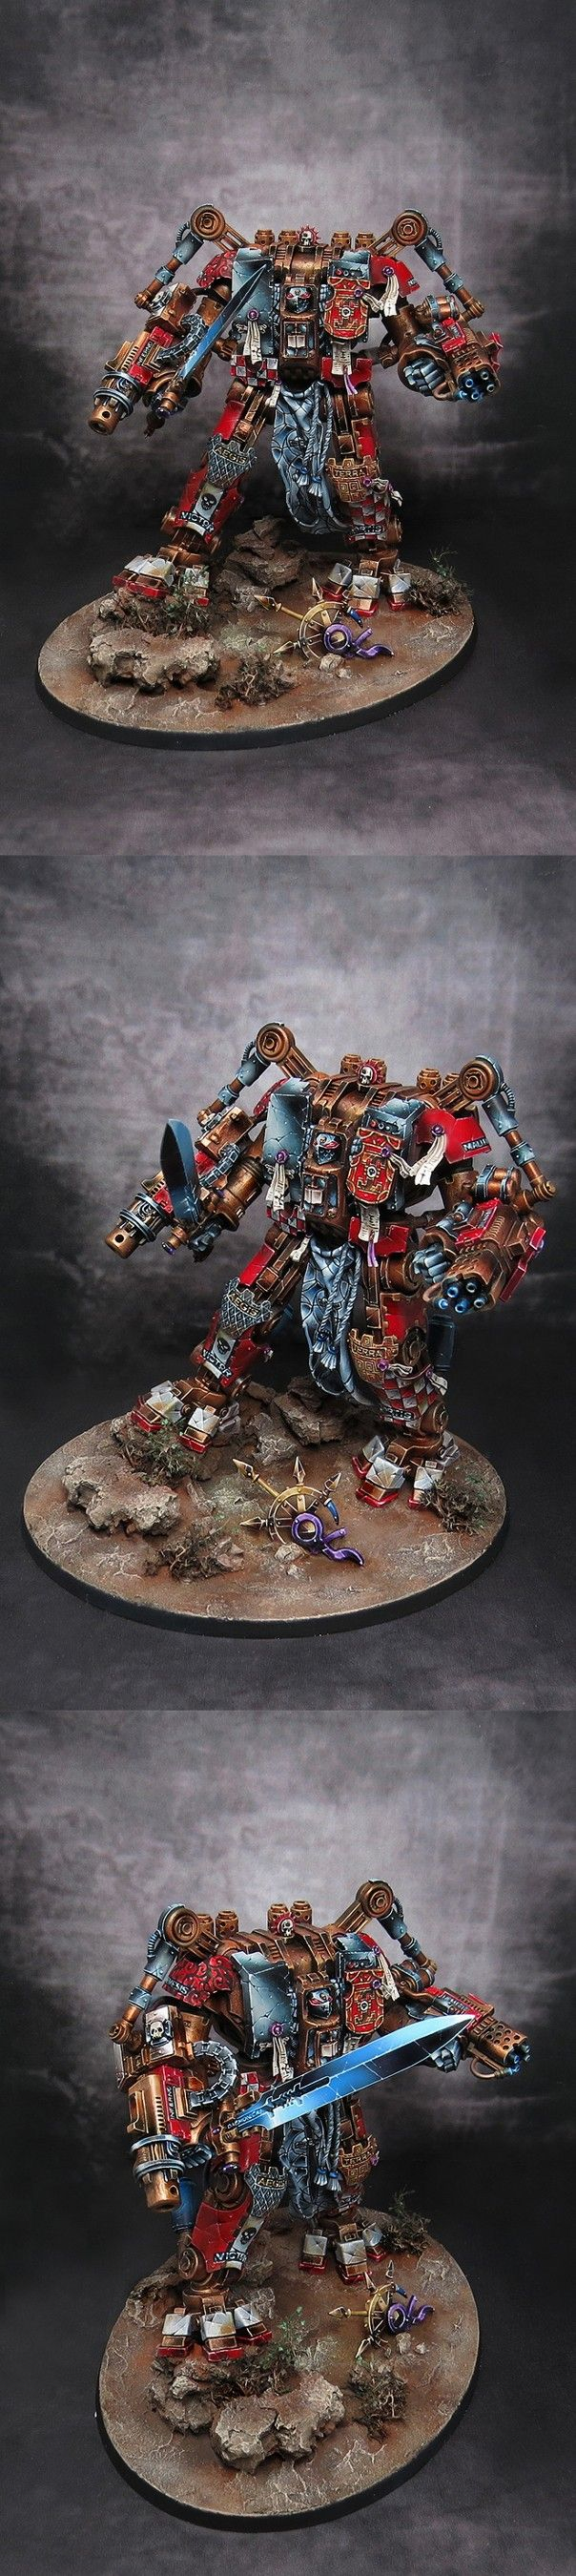 40k - Grey Knights Nemesis Dreadknight by Shizune